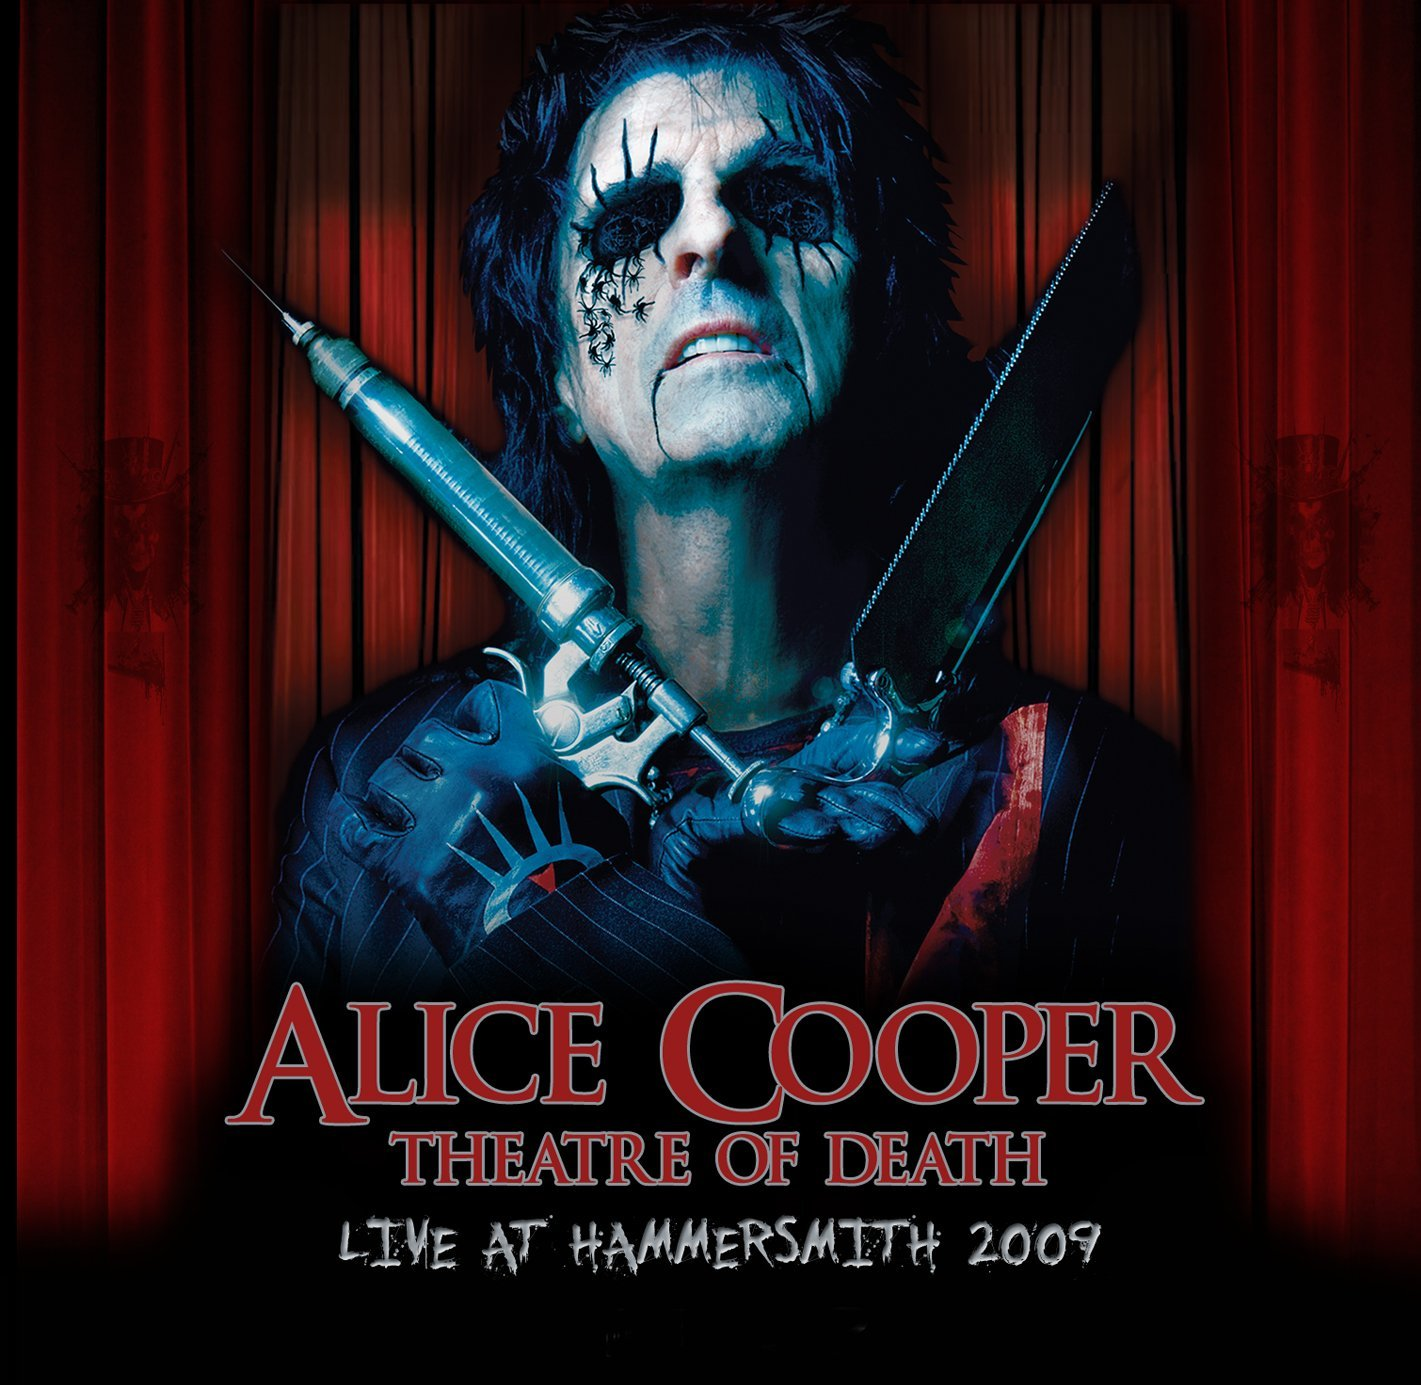 Theatre of death: Live at Hammersmith 2009